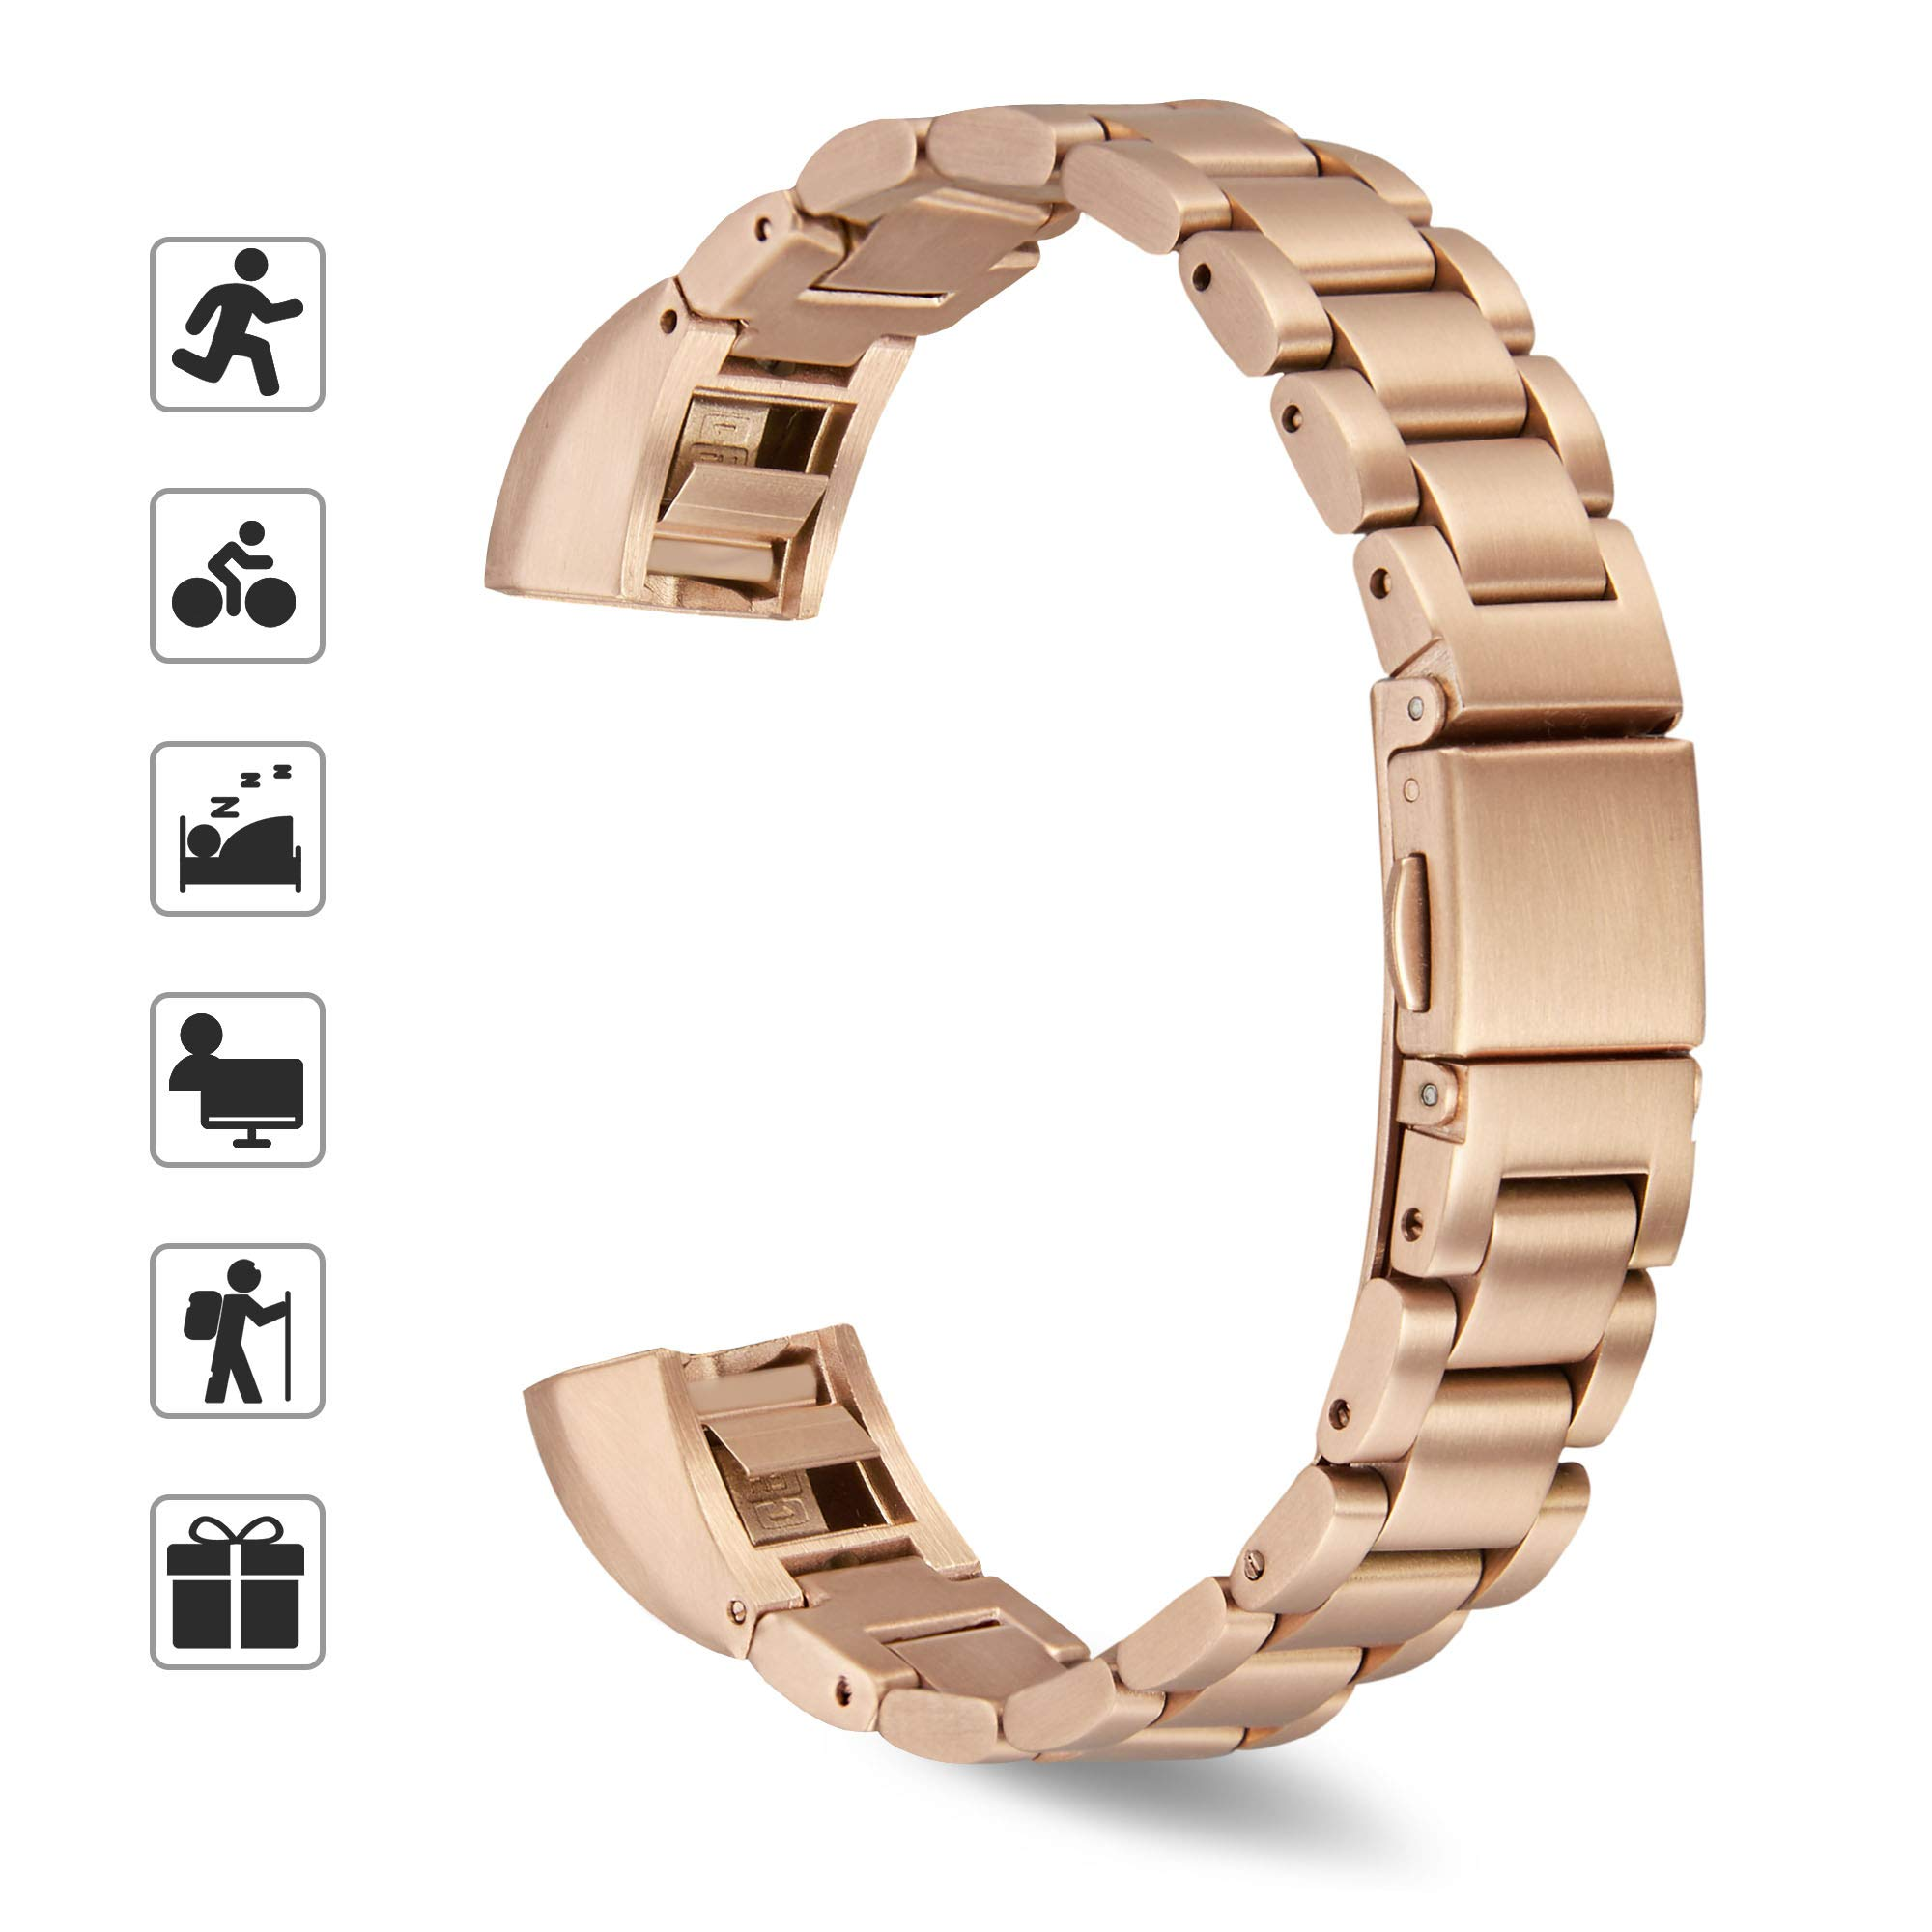 TOMALL Metal Bands Compatible for Alta and Alta HR,Stainless Steel Metal Replacement Wristband for Women Men (Rose Gold)